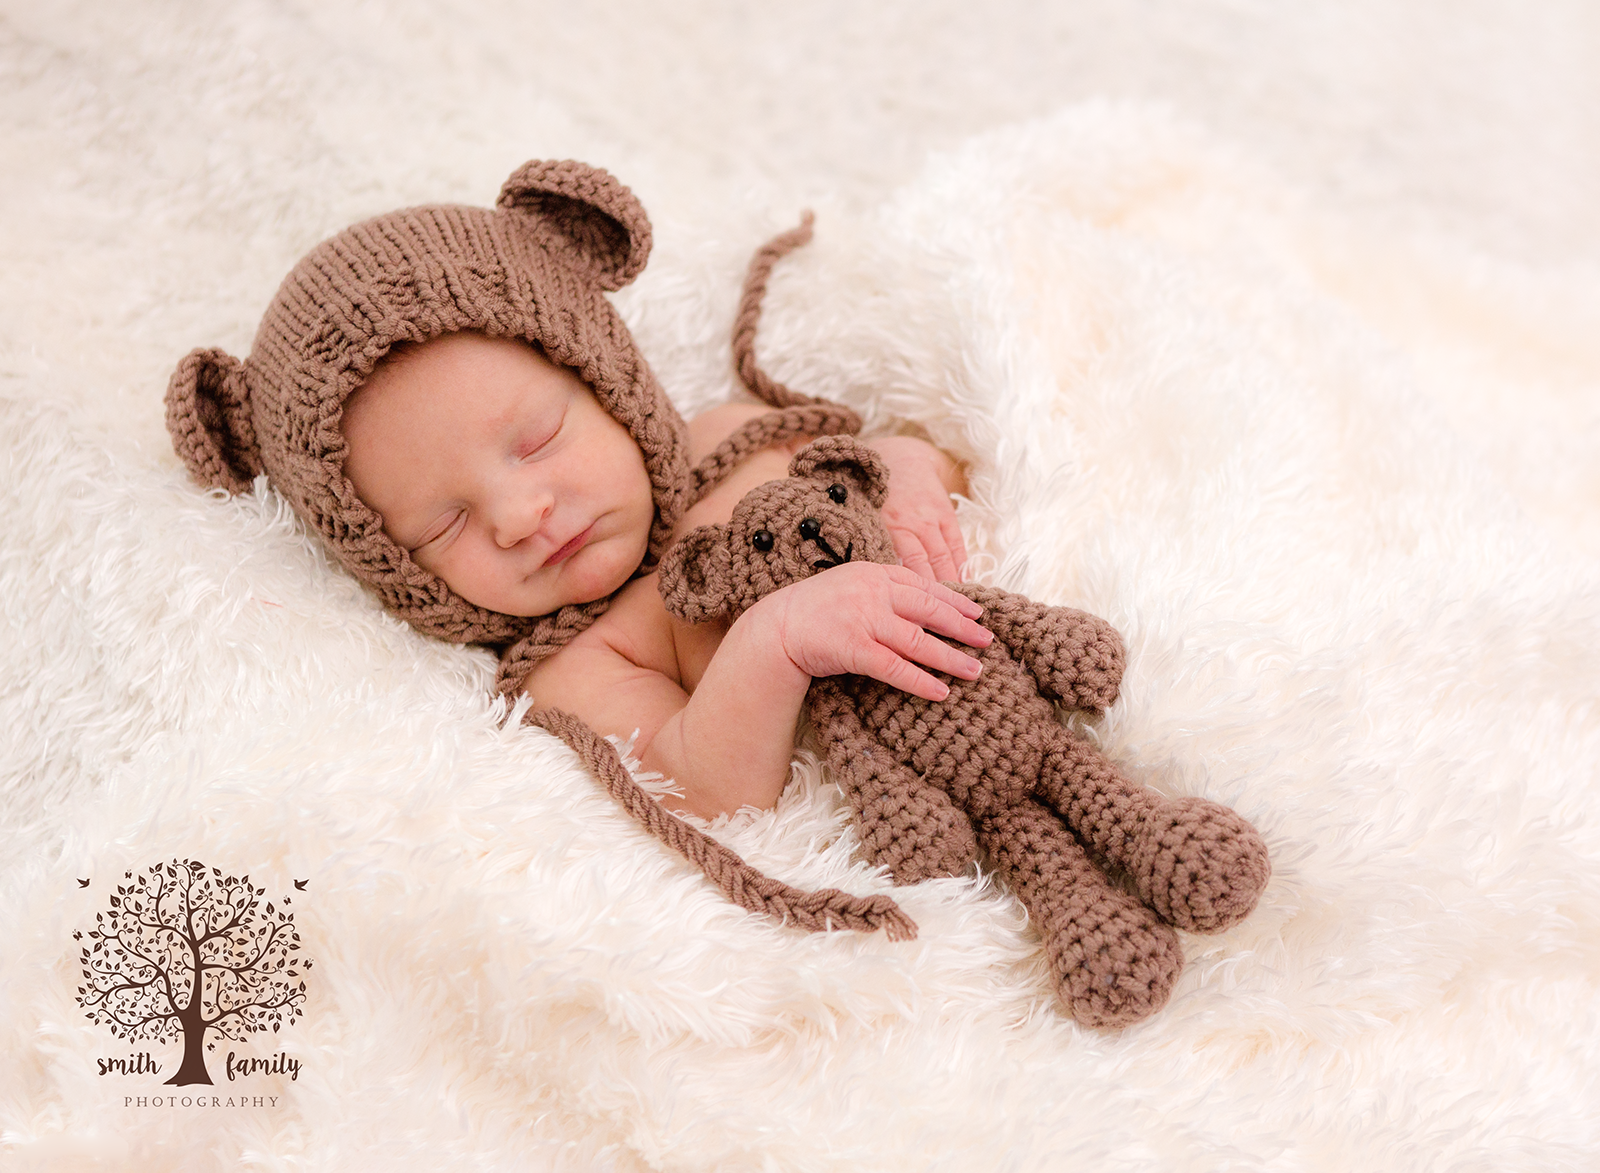 """She was extremely patient with my fussy newborn. I never felt rushed or anything even though we had to feed the baby and calm her down several times. She was so great with all my children, would highly recommend her!"" - Christina C."